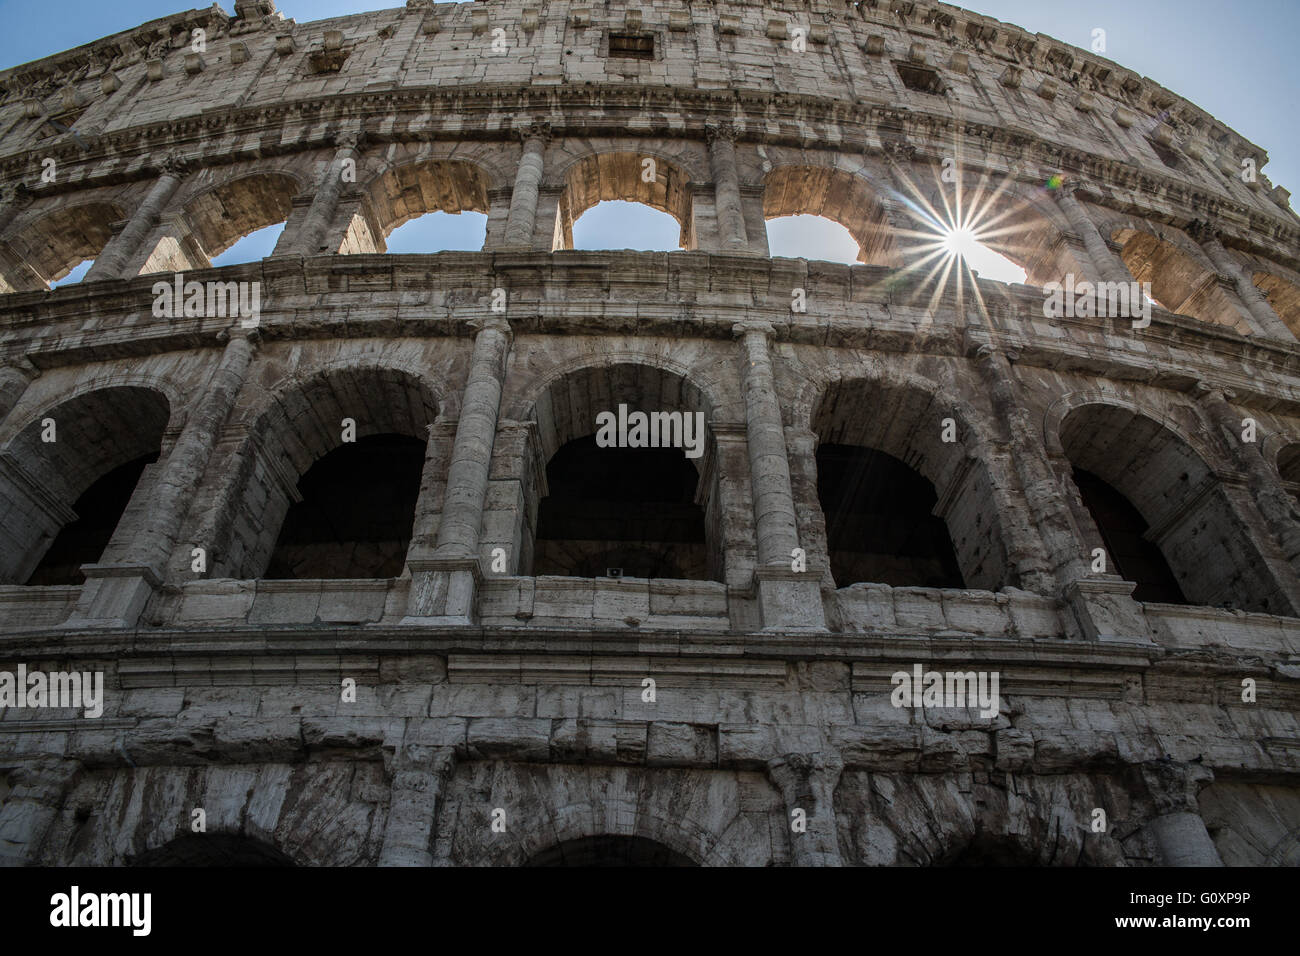 The Colosseum or Coliseum also known as the Flavian Amphitheatre is an oval amphitheatre in the centre of the city - Stock Image